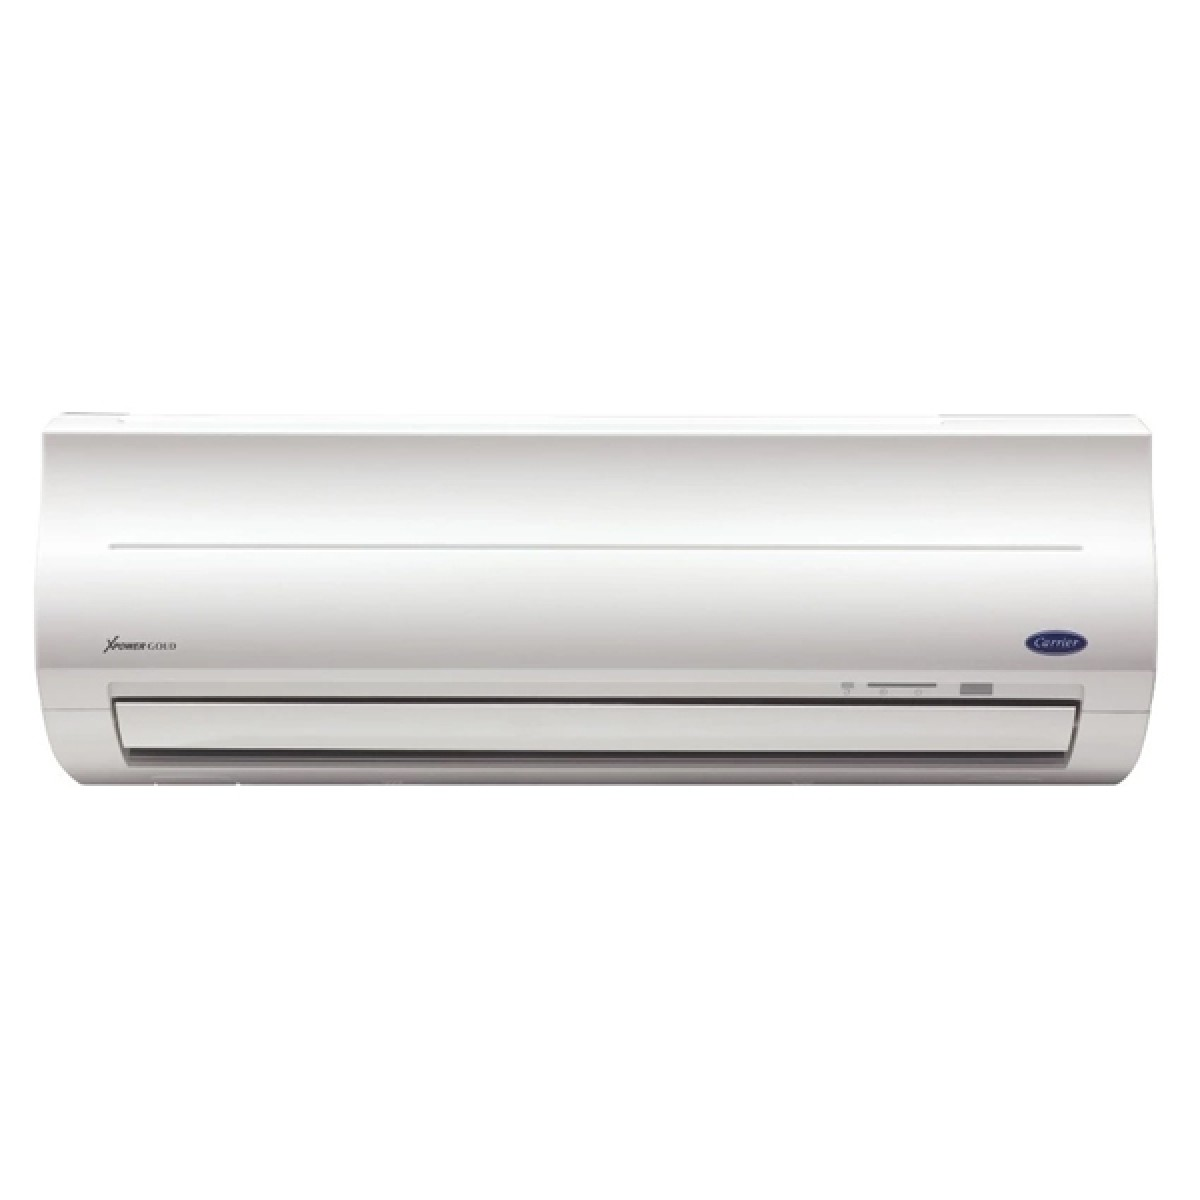 #424366 Carrier CVUR013 1.5 Inverter Split Type AC Robinsons  Best 4823 Inverter Window Ac photos with 1200x1200 px on helpvideos.info - Air Conditioners, Air Coolers and more